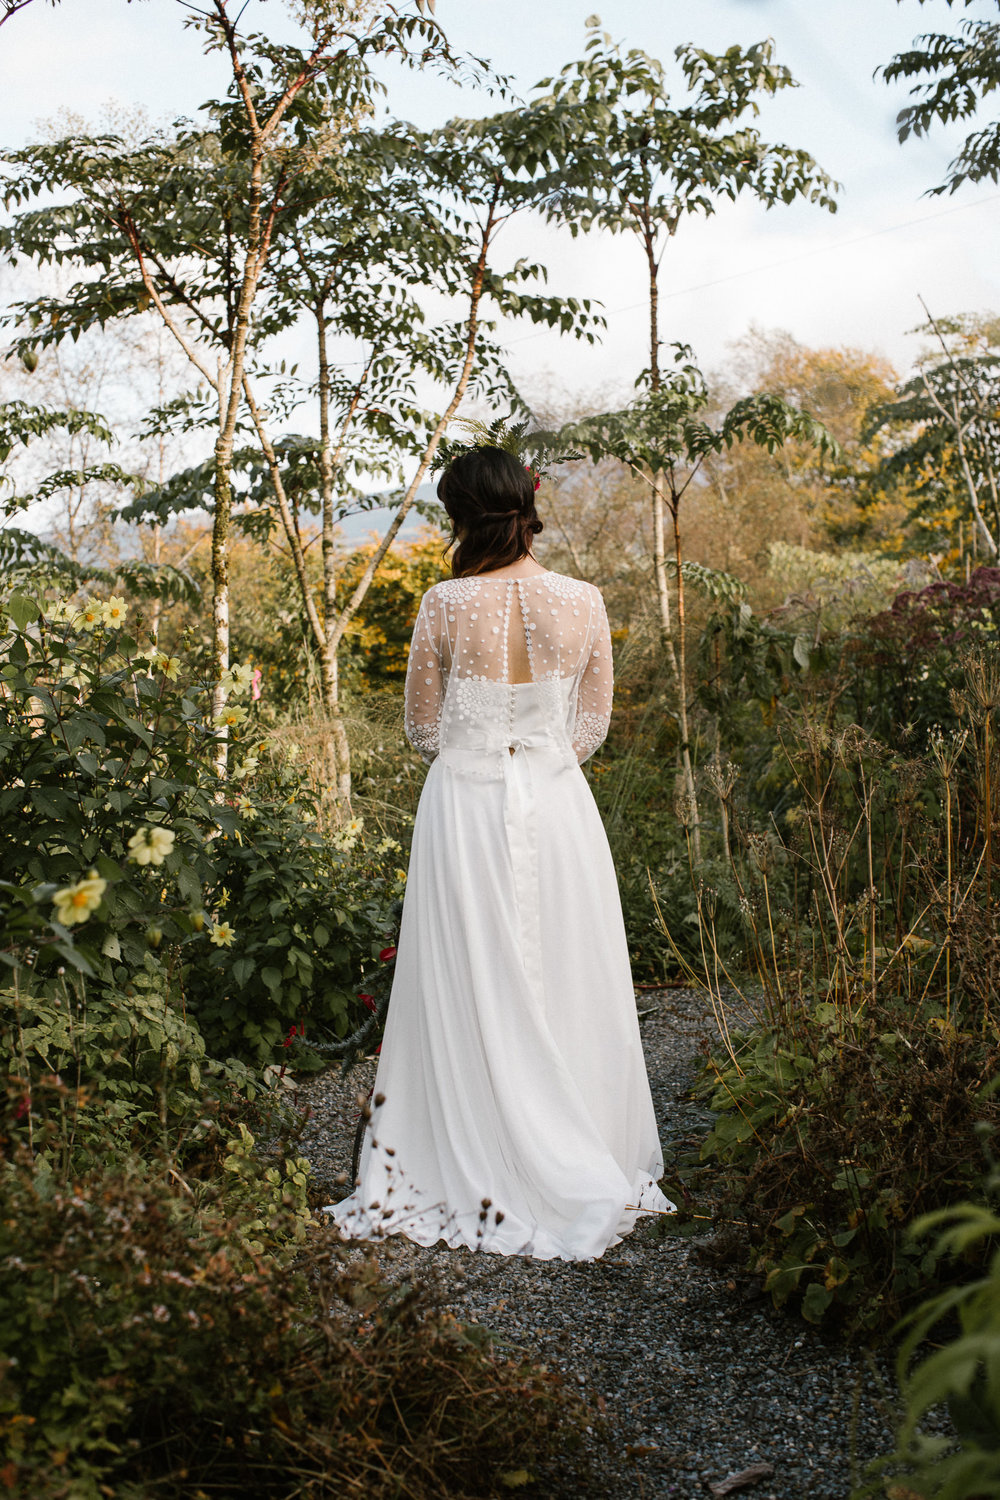 clairebyrnephotography-styled-shoot-huntingbrook-gardens-inspiration-weddings-woods-forest-87.jpg